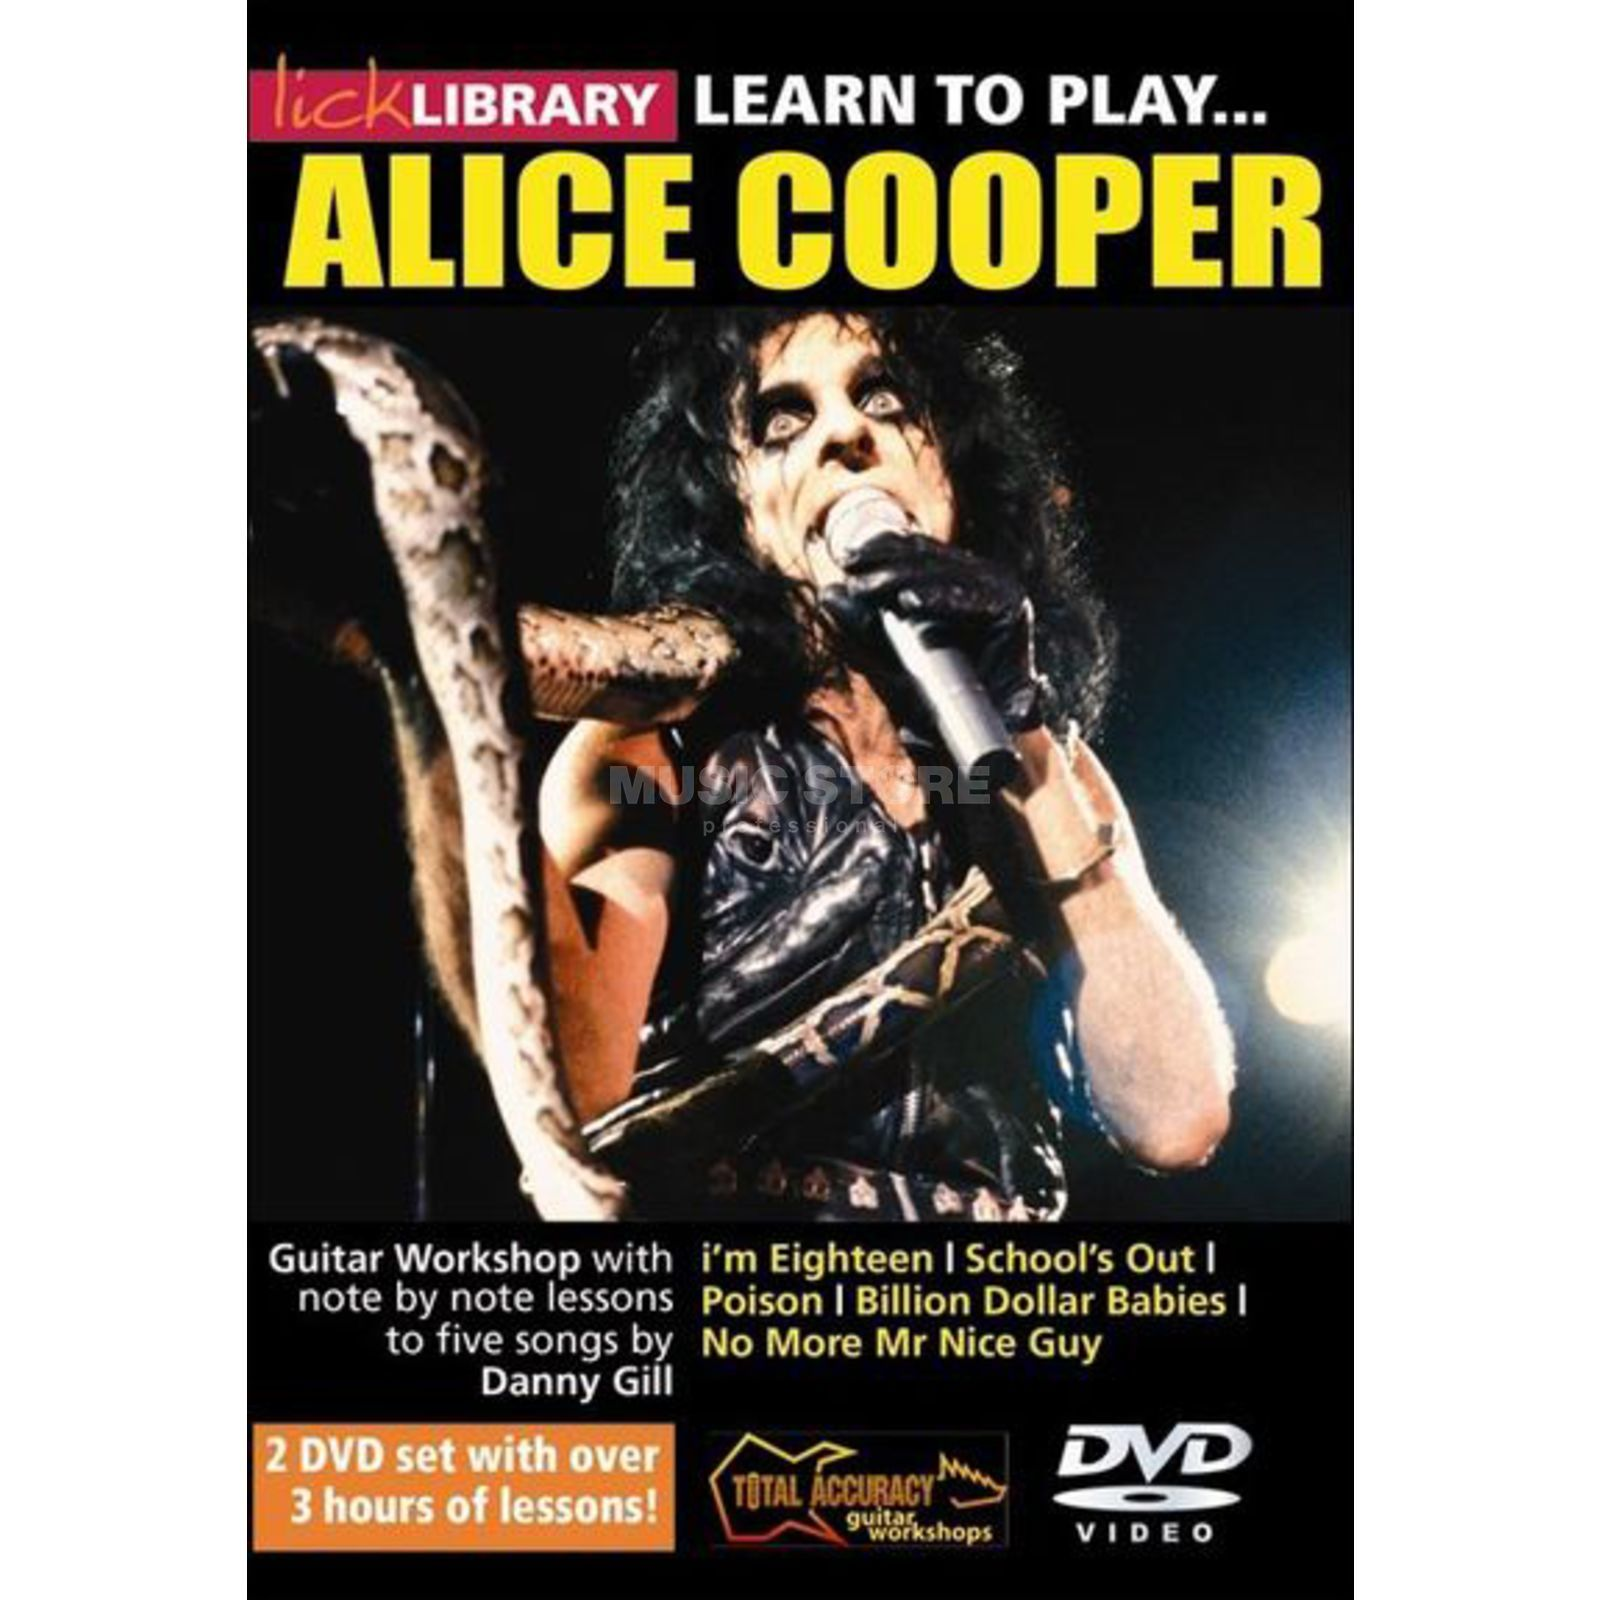 Roadrock International Lick Library: Learn To Play Alice Cooper DVD Produktbild